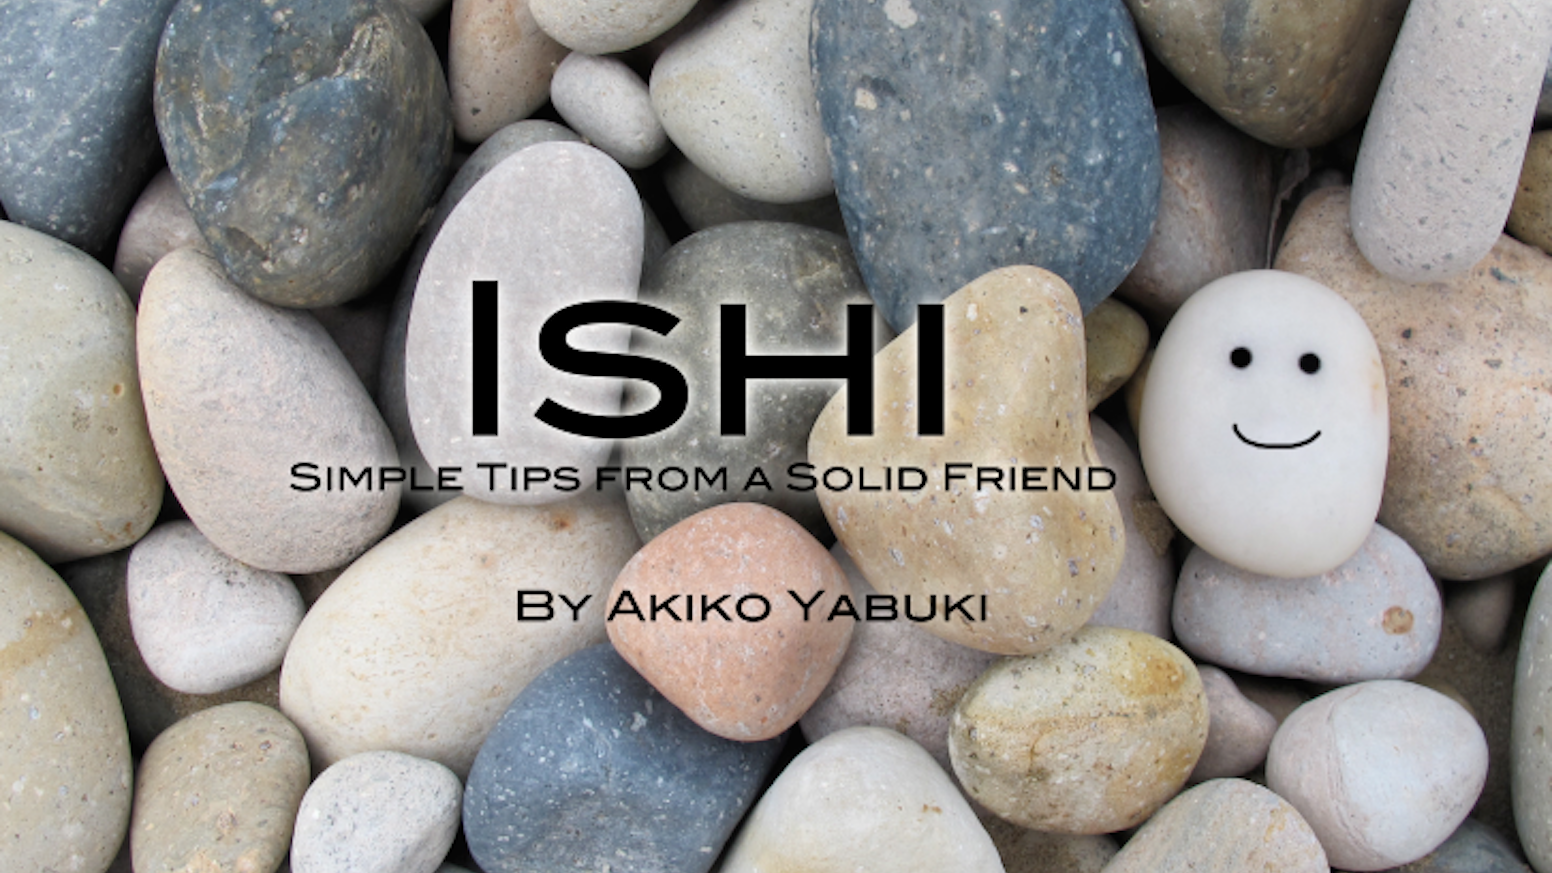 A cozy hug of a picture book featuring Ishi, a little rock who reminds us to choose and share happiness!